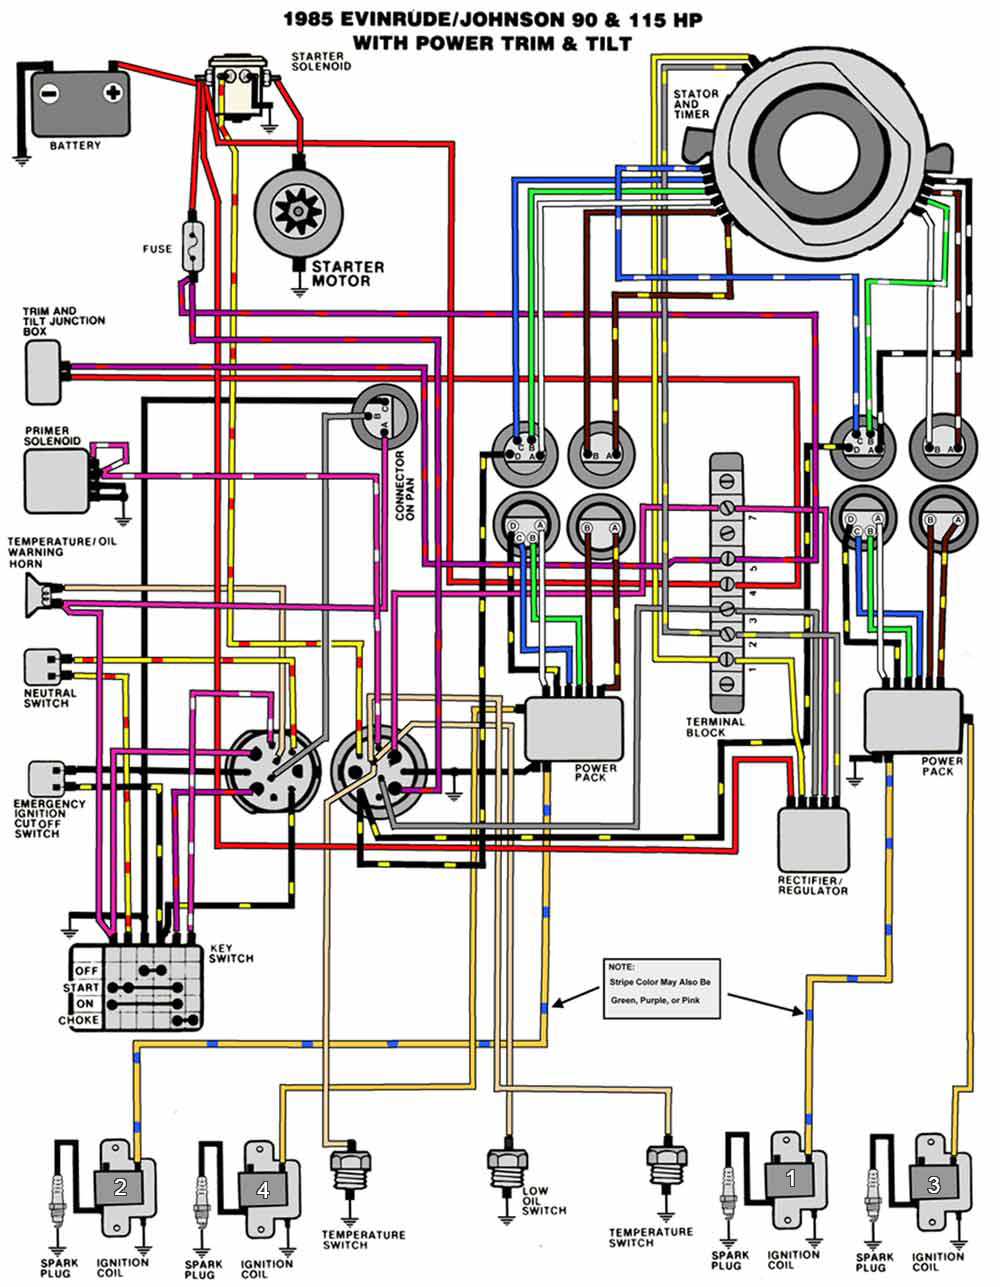 1985_90_115TnT mastertech marine evinrude johnson outboard wiring diagrams  at alyssarenee.co